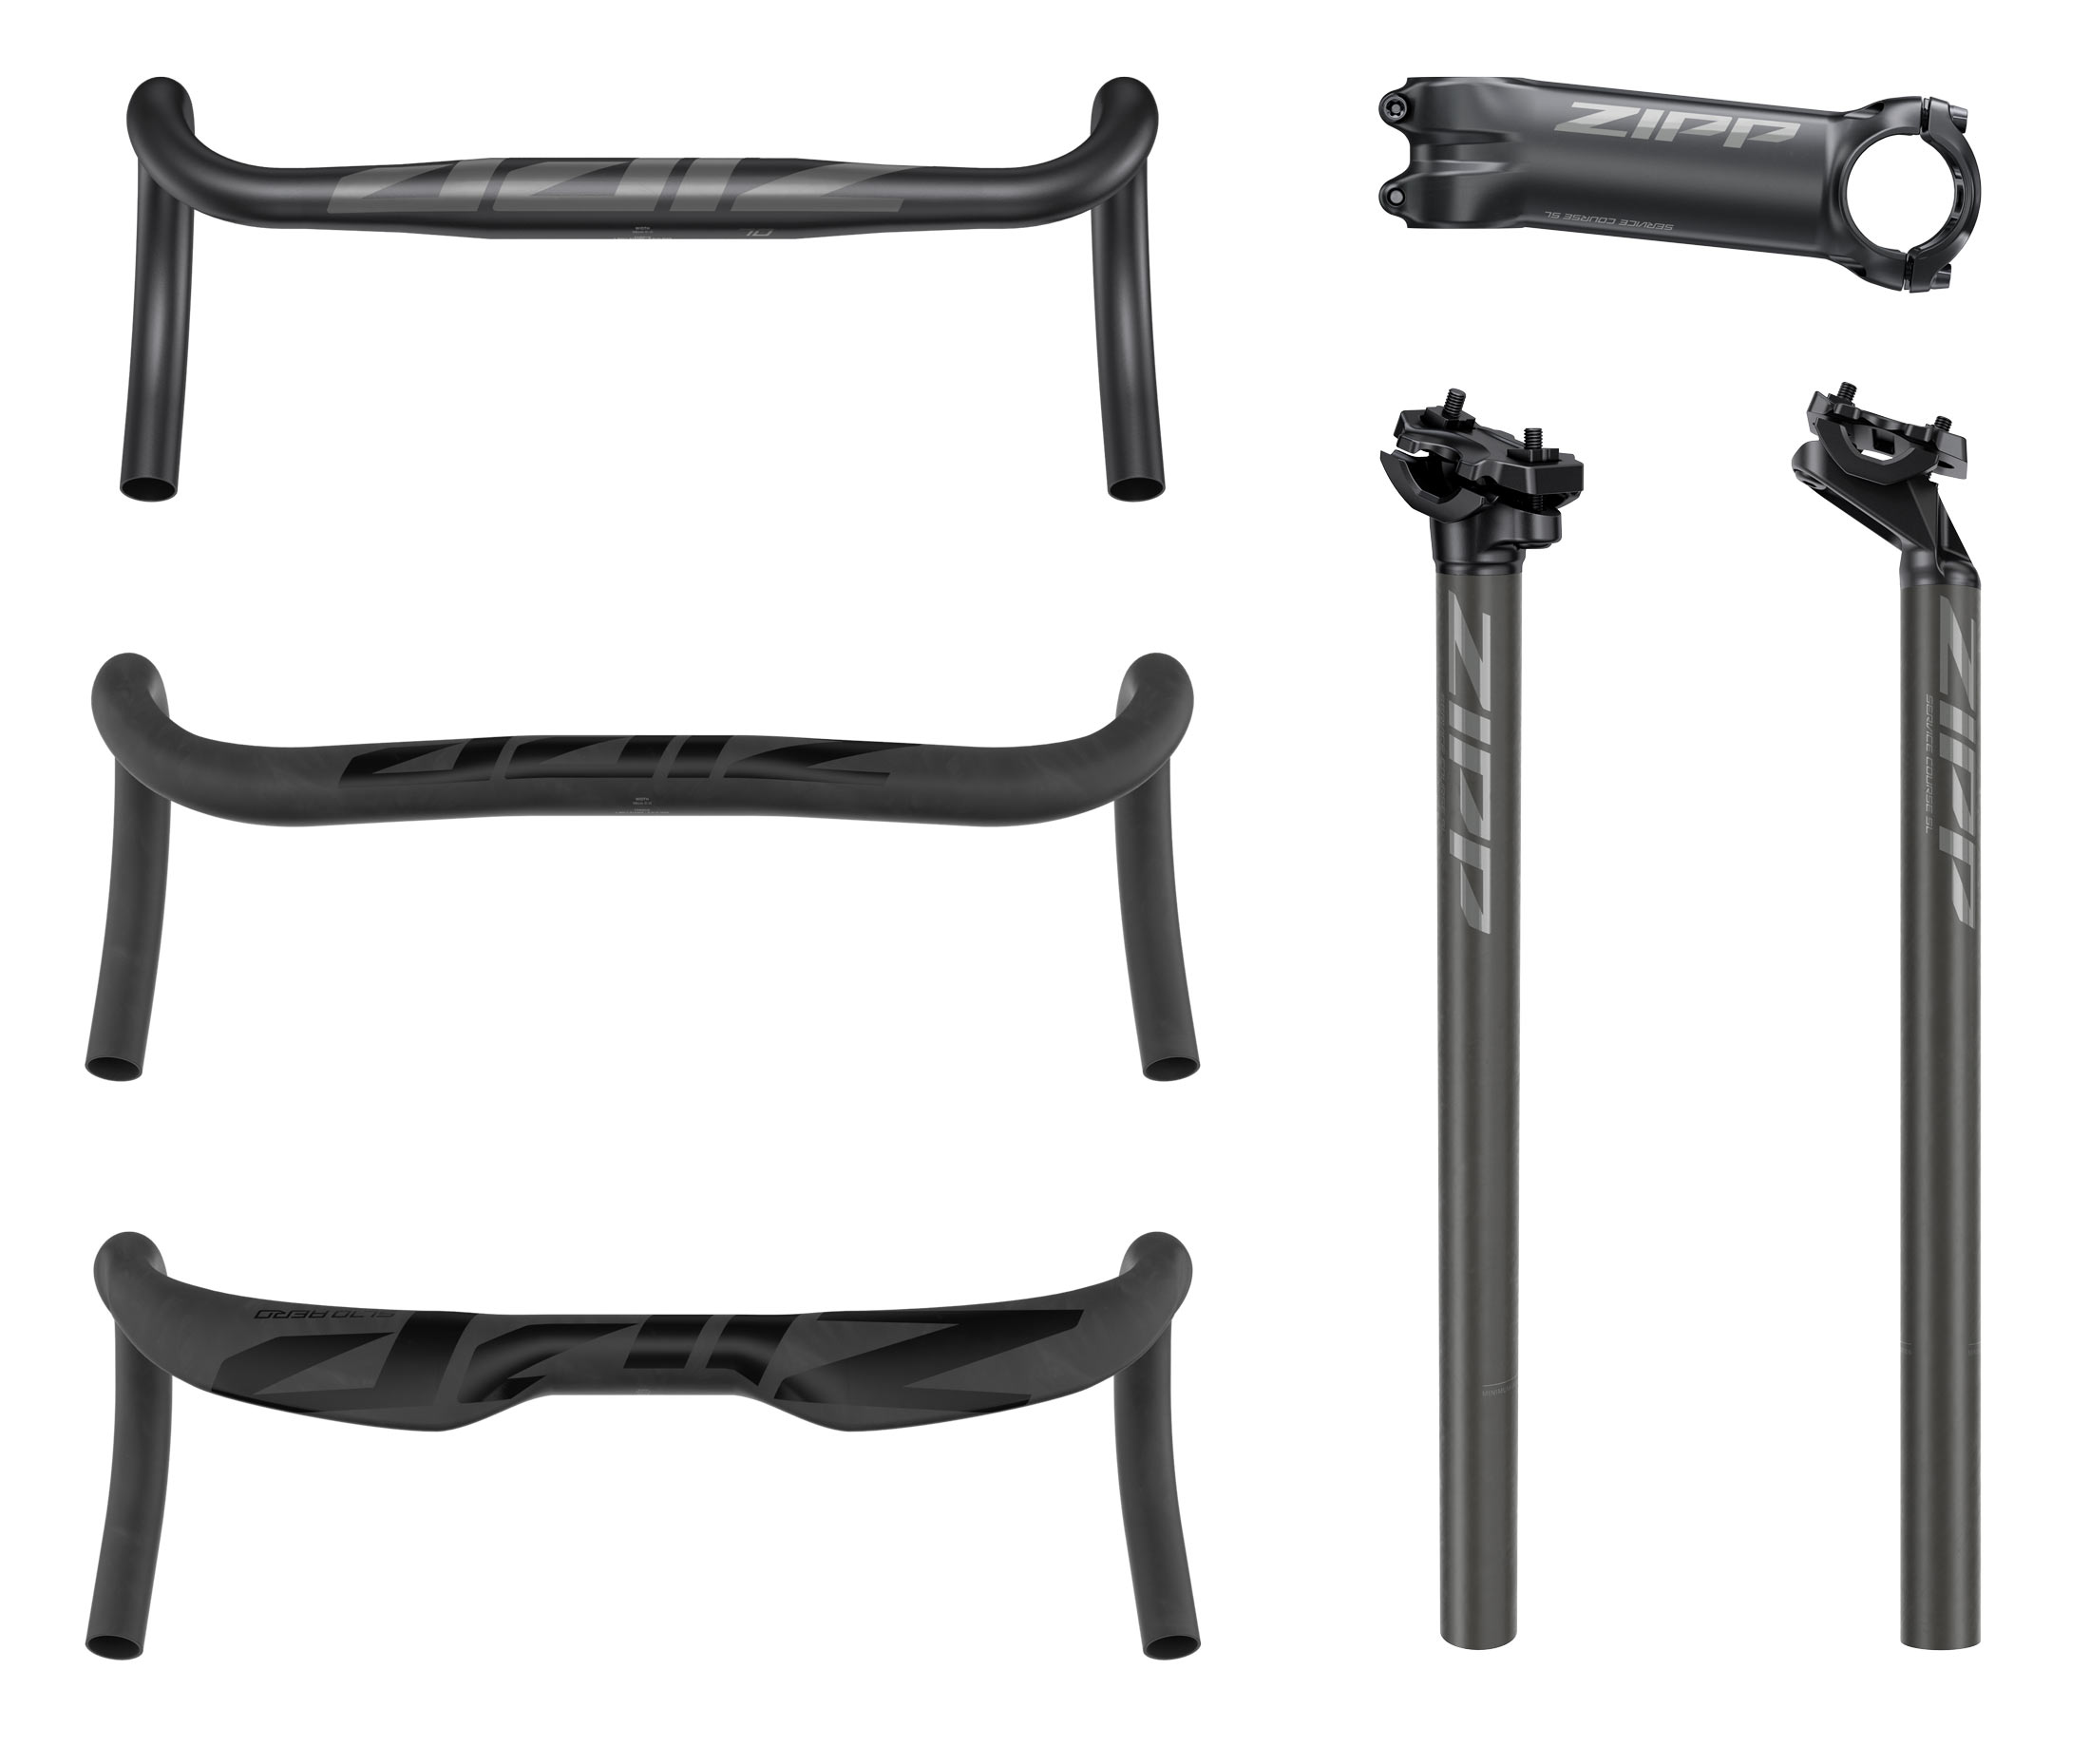 2021 zipp service course sl carbon handlebars and mixed material seatposts with alloy stems